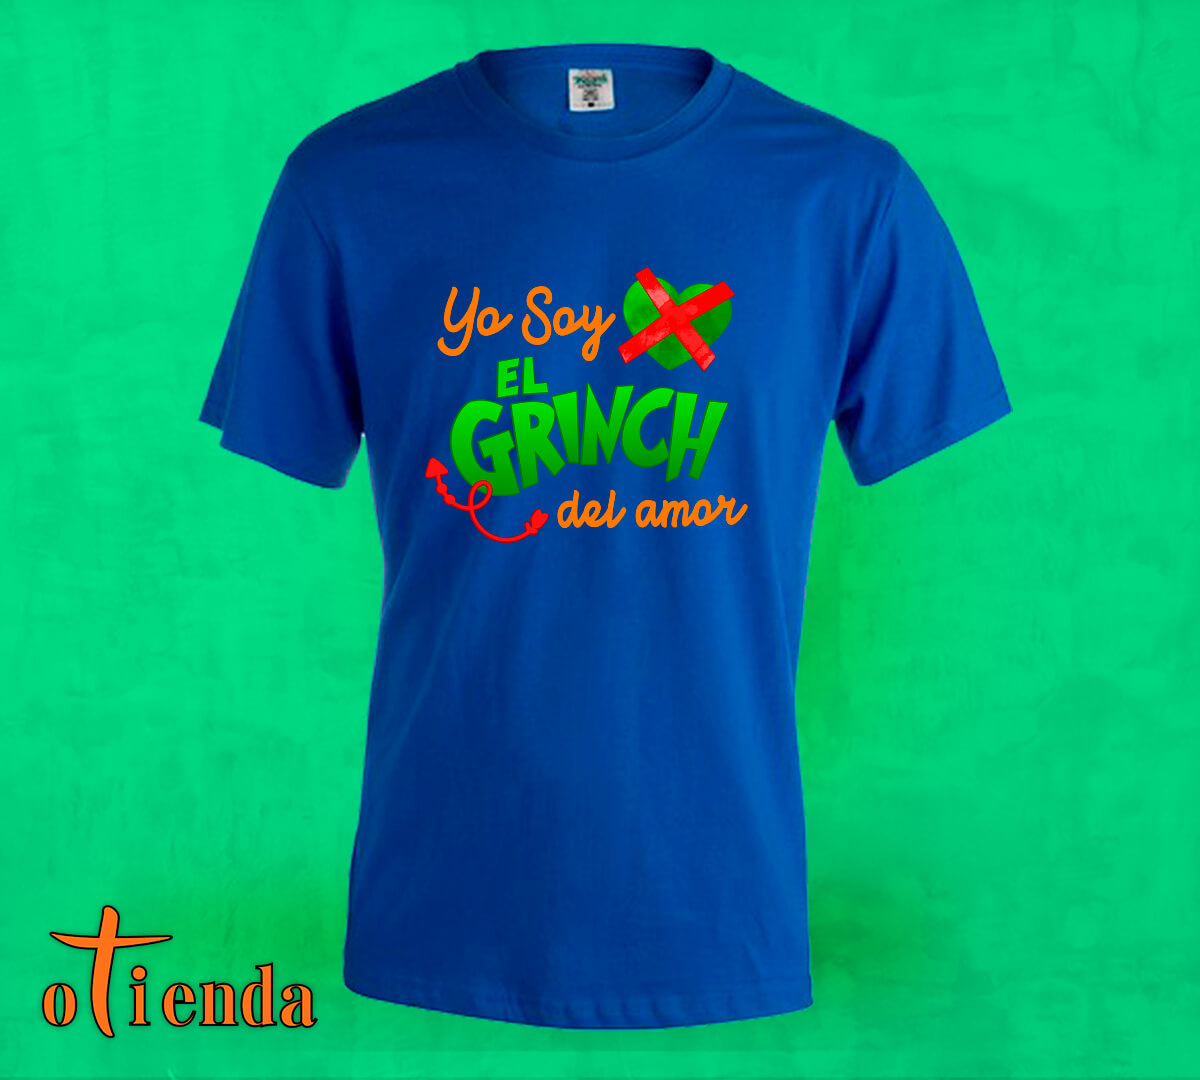 Camiseta de color Anti amor personalizada